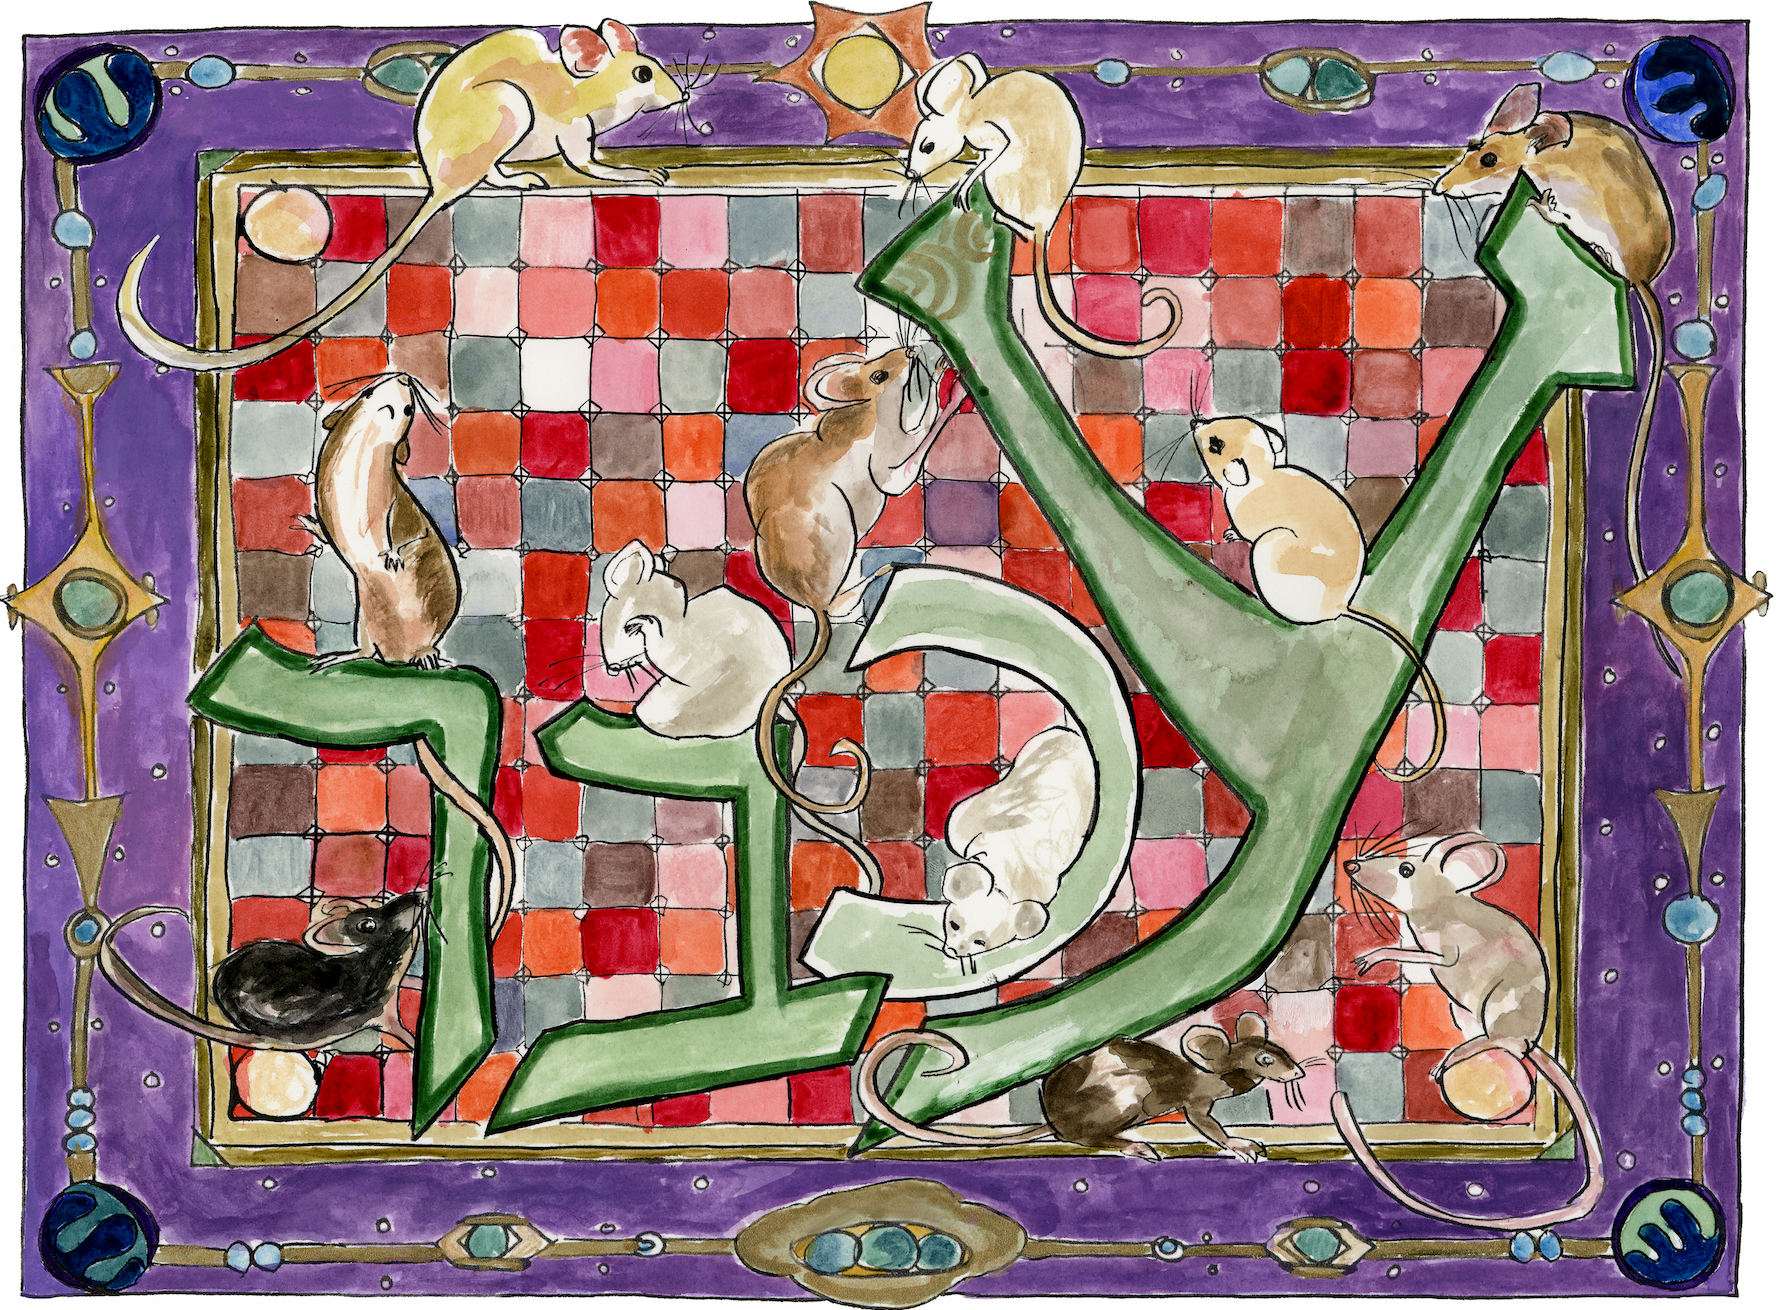 Mouse, by Abbie Steiner, from The Aleph Bet Bestiary (2002-2019)